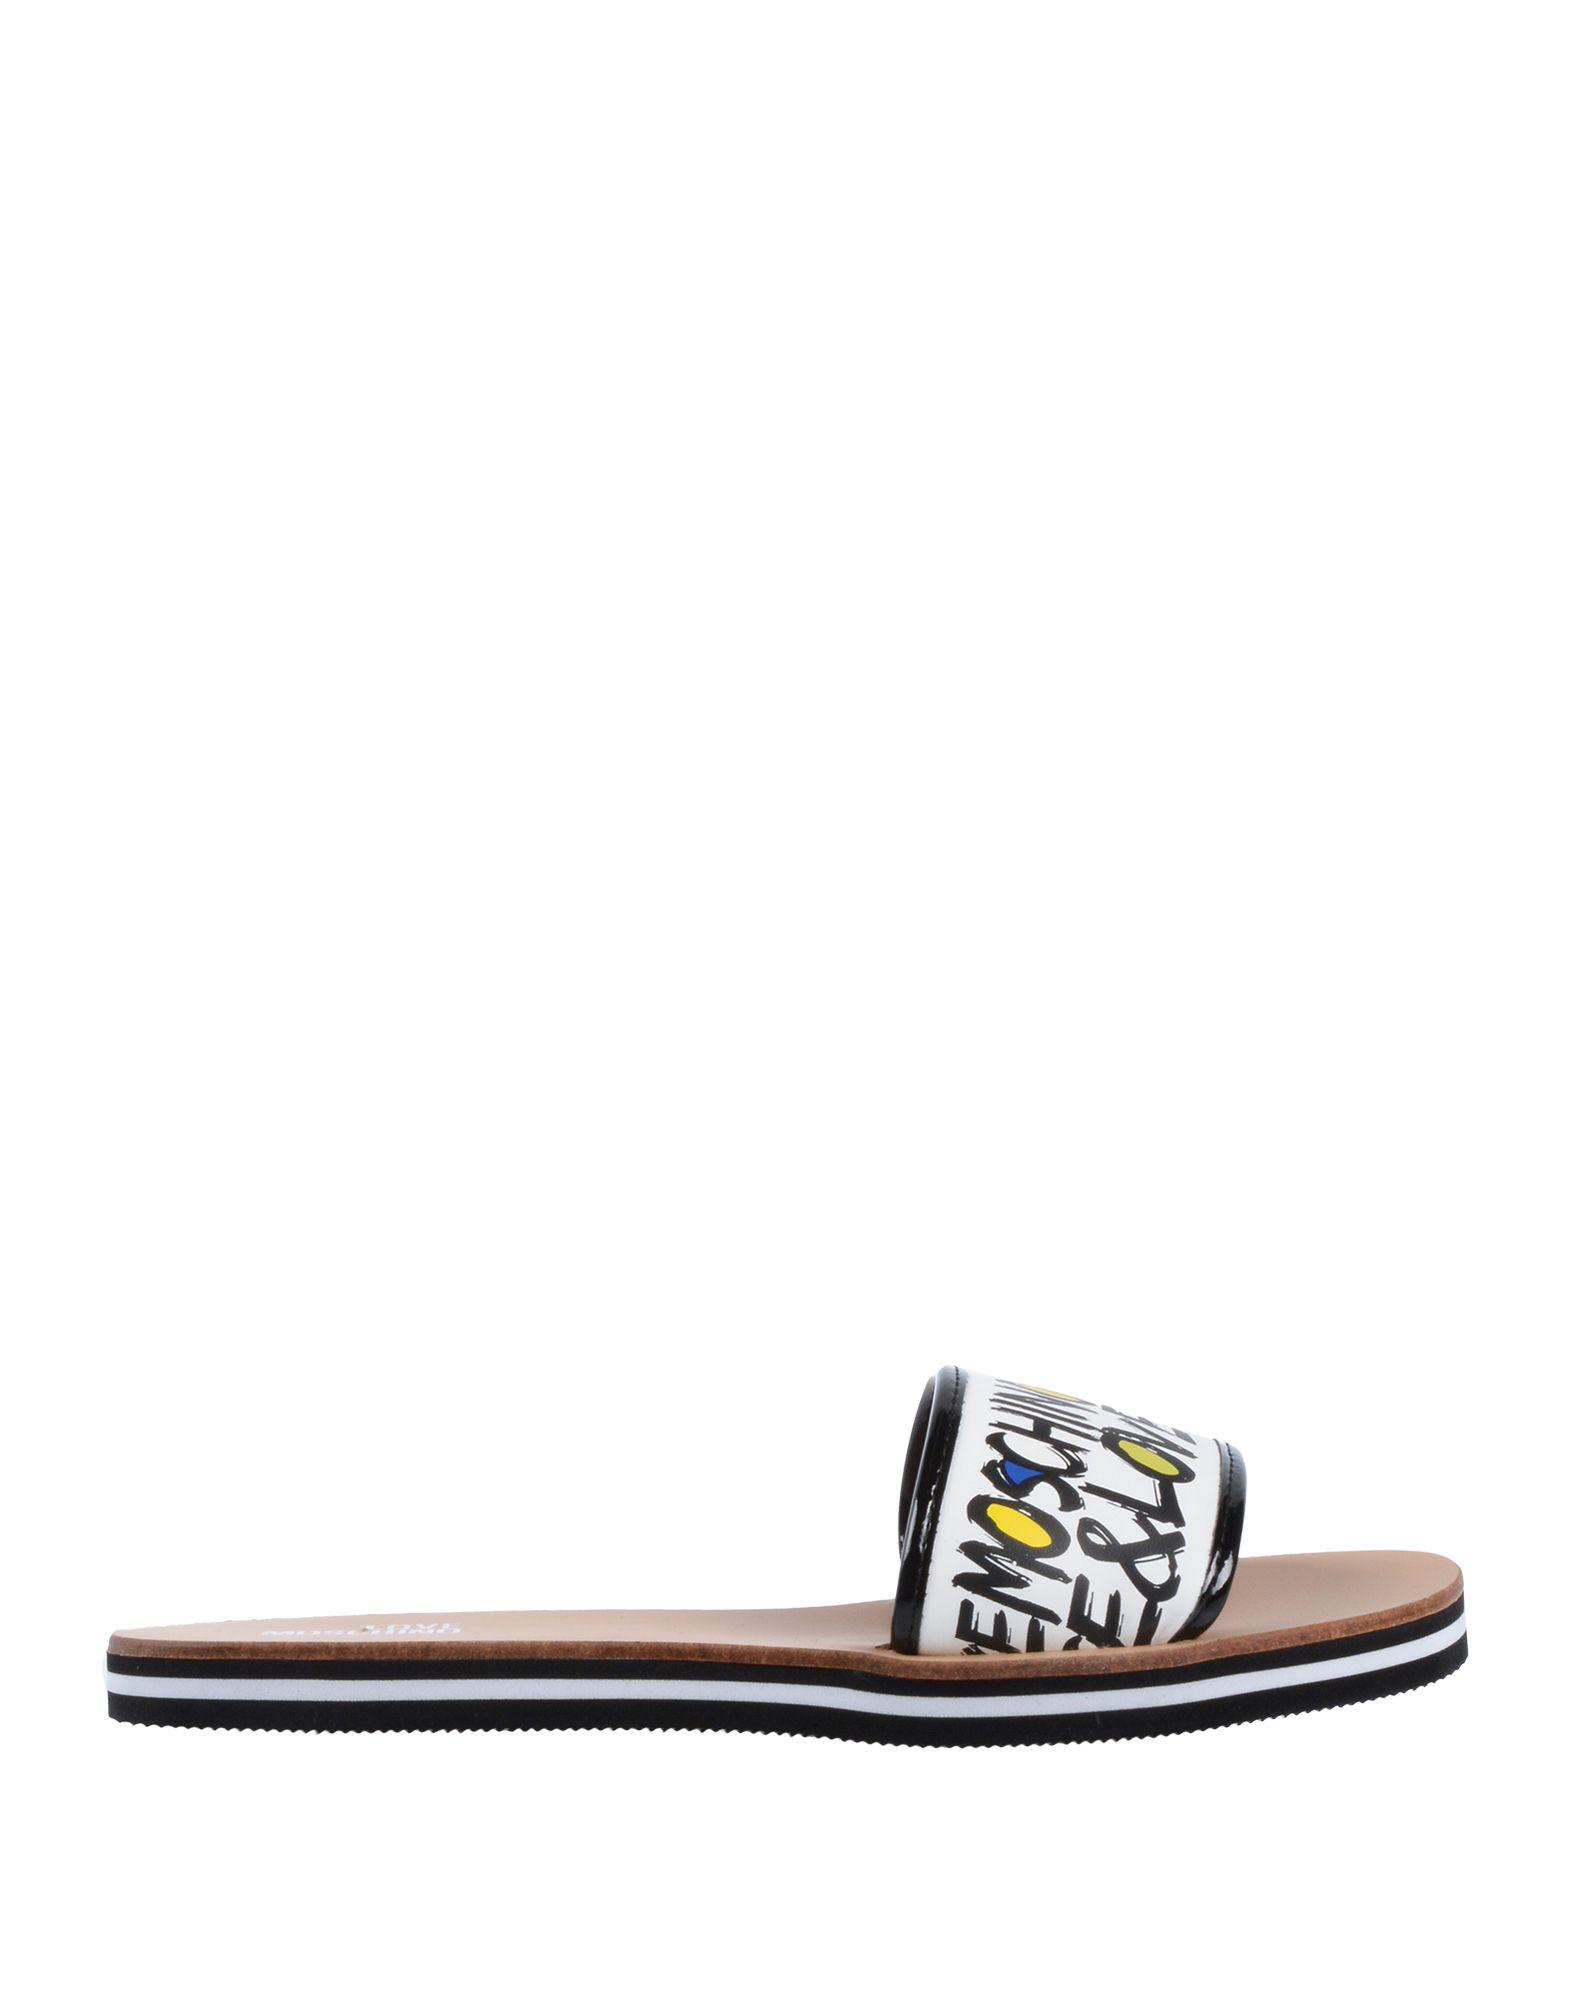 5f29e80af635 Lyst - Love Moschino Sandals in White